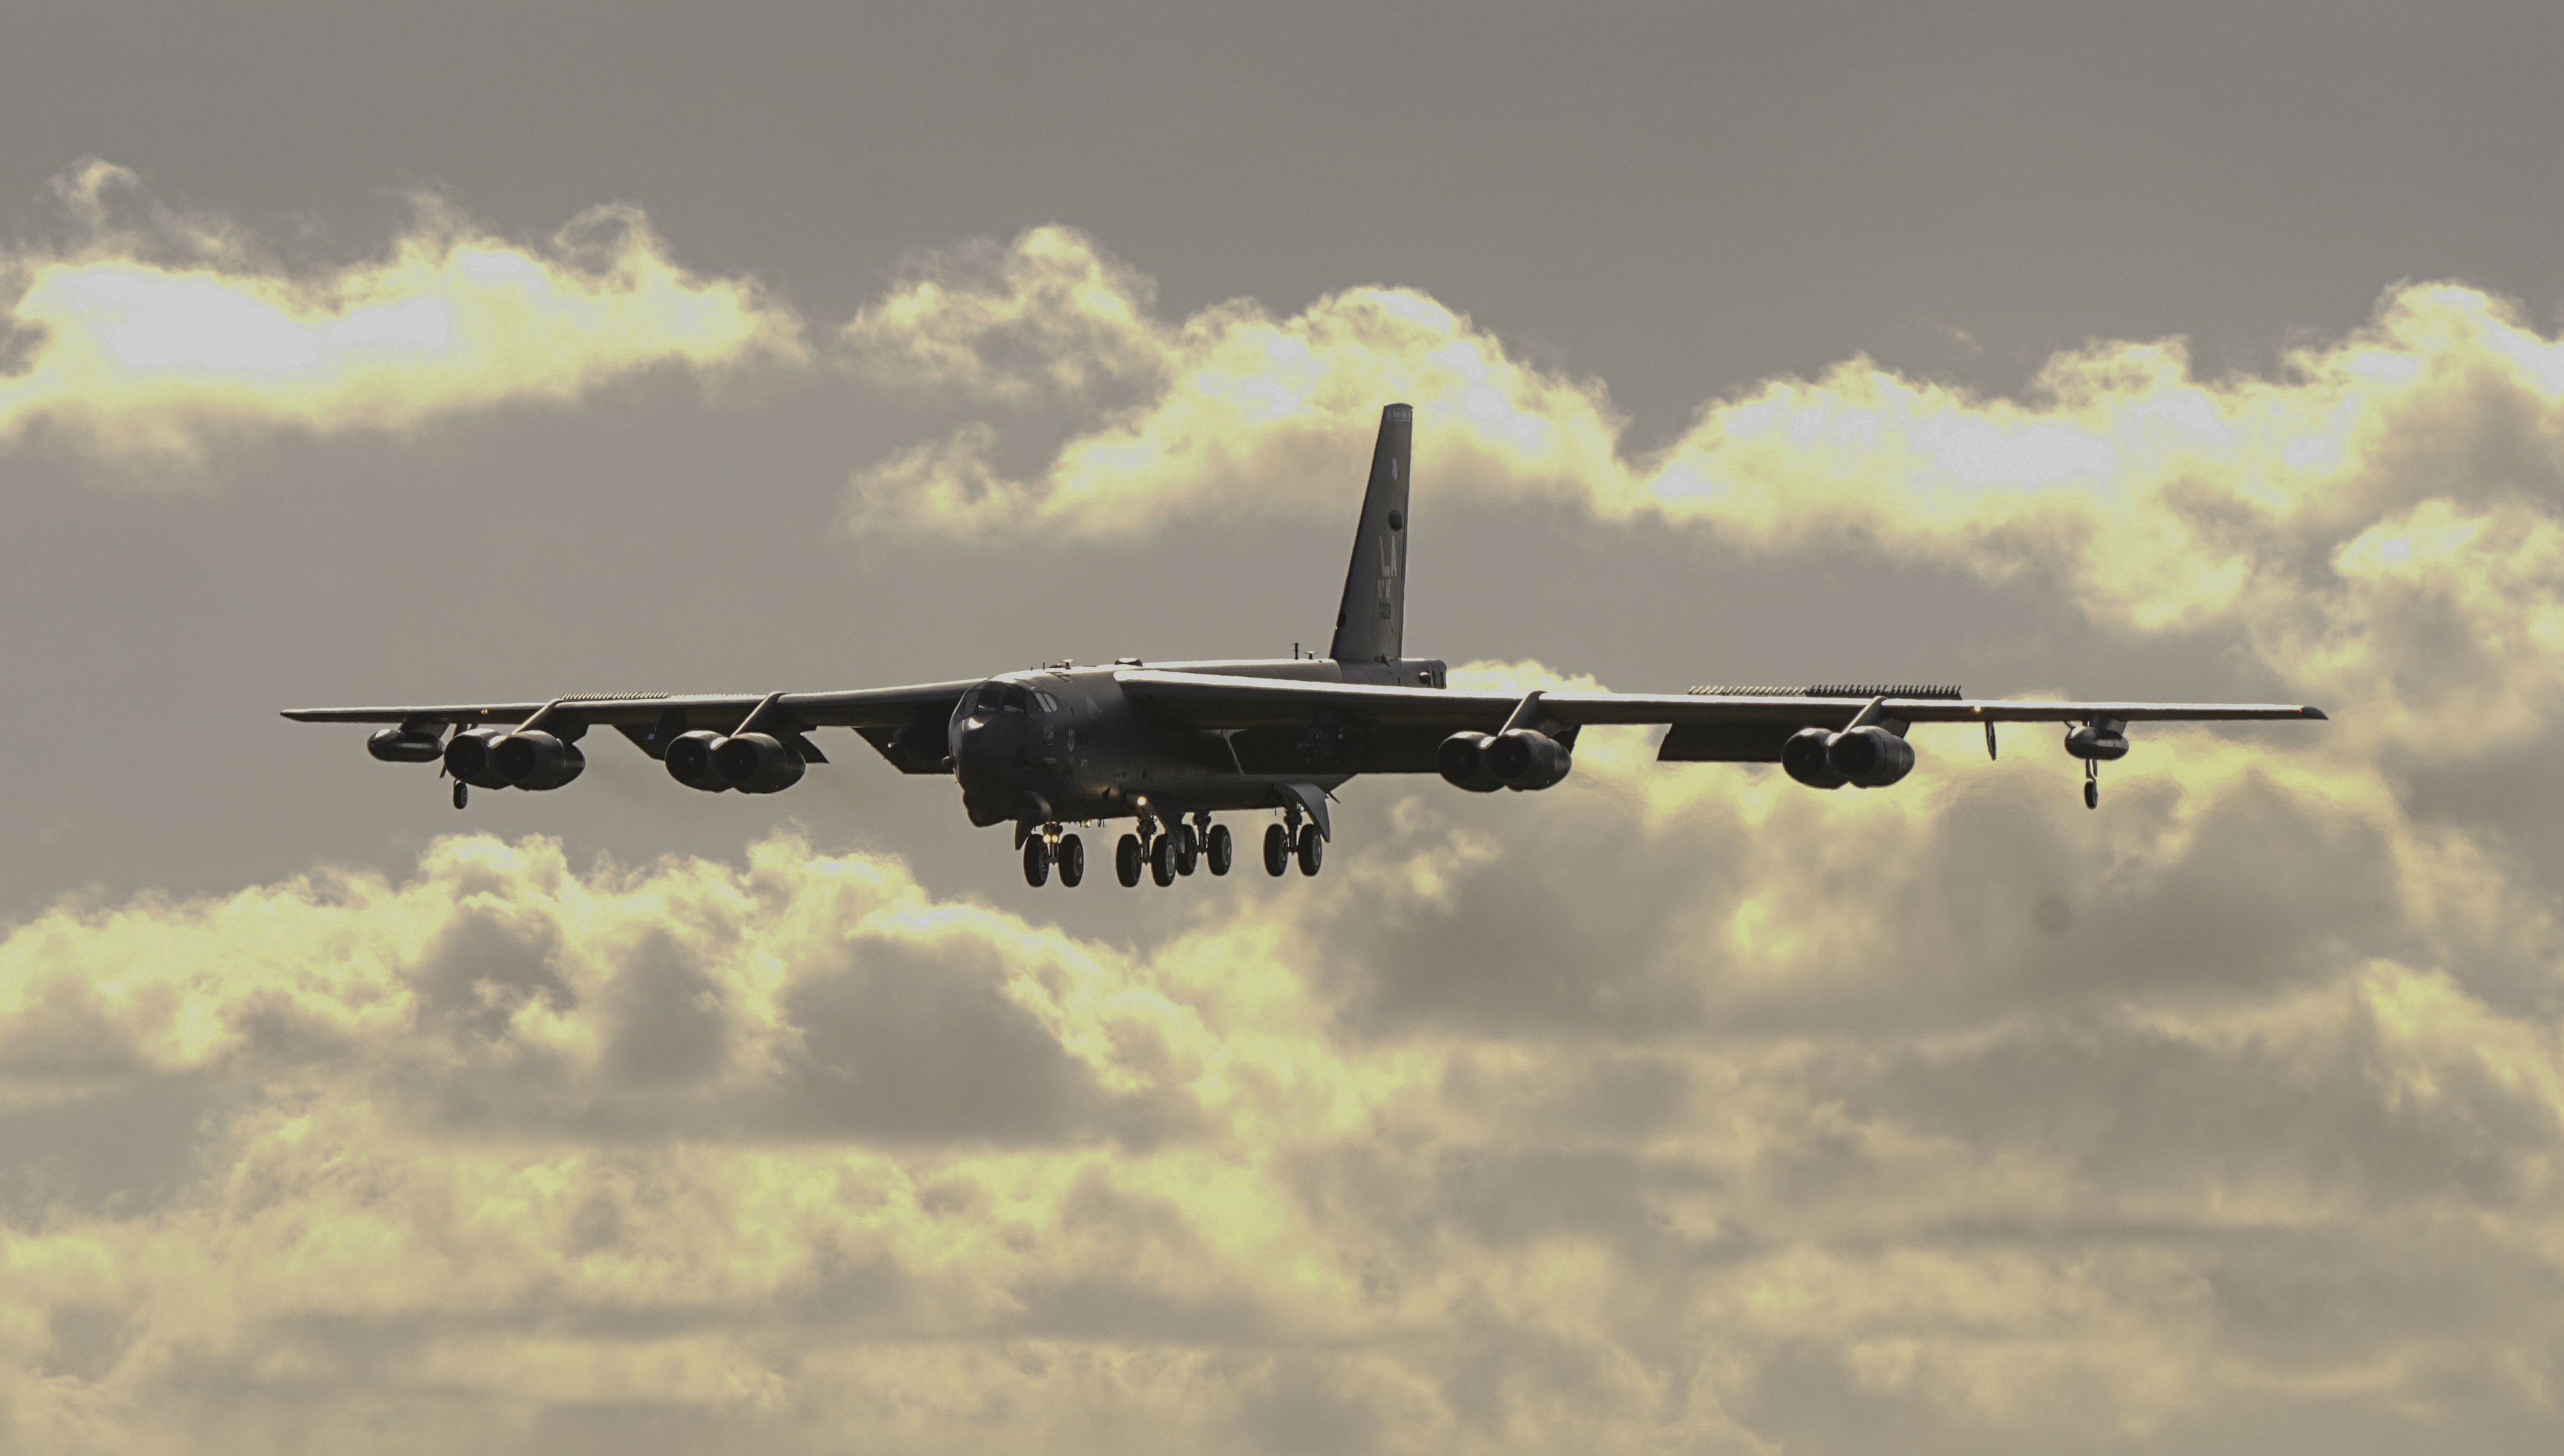 B-52H Stratofortress bomber prepares to land